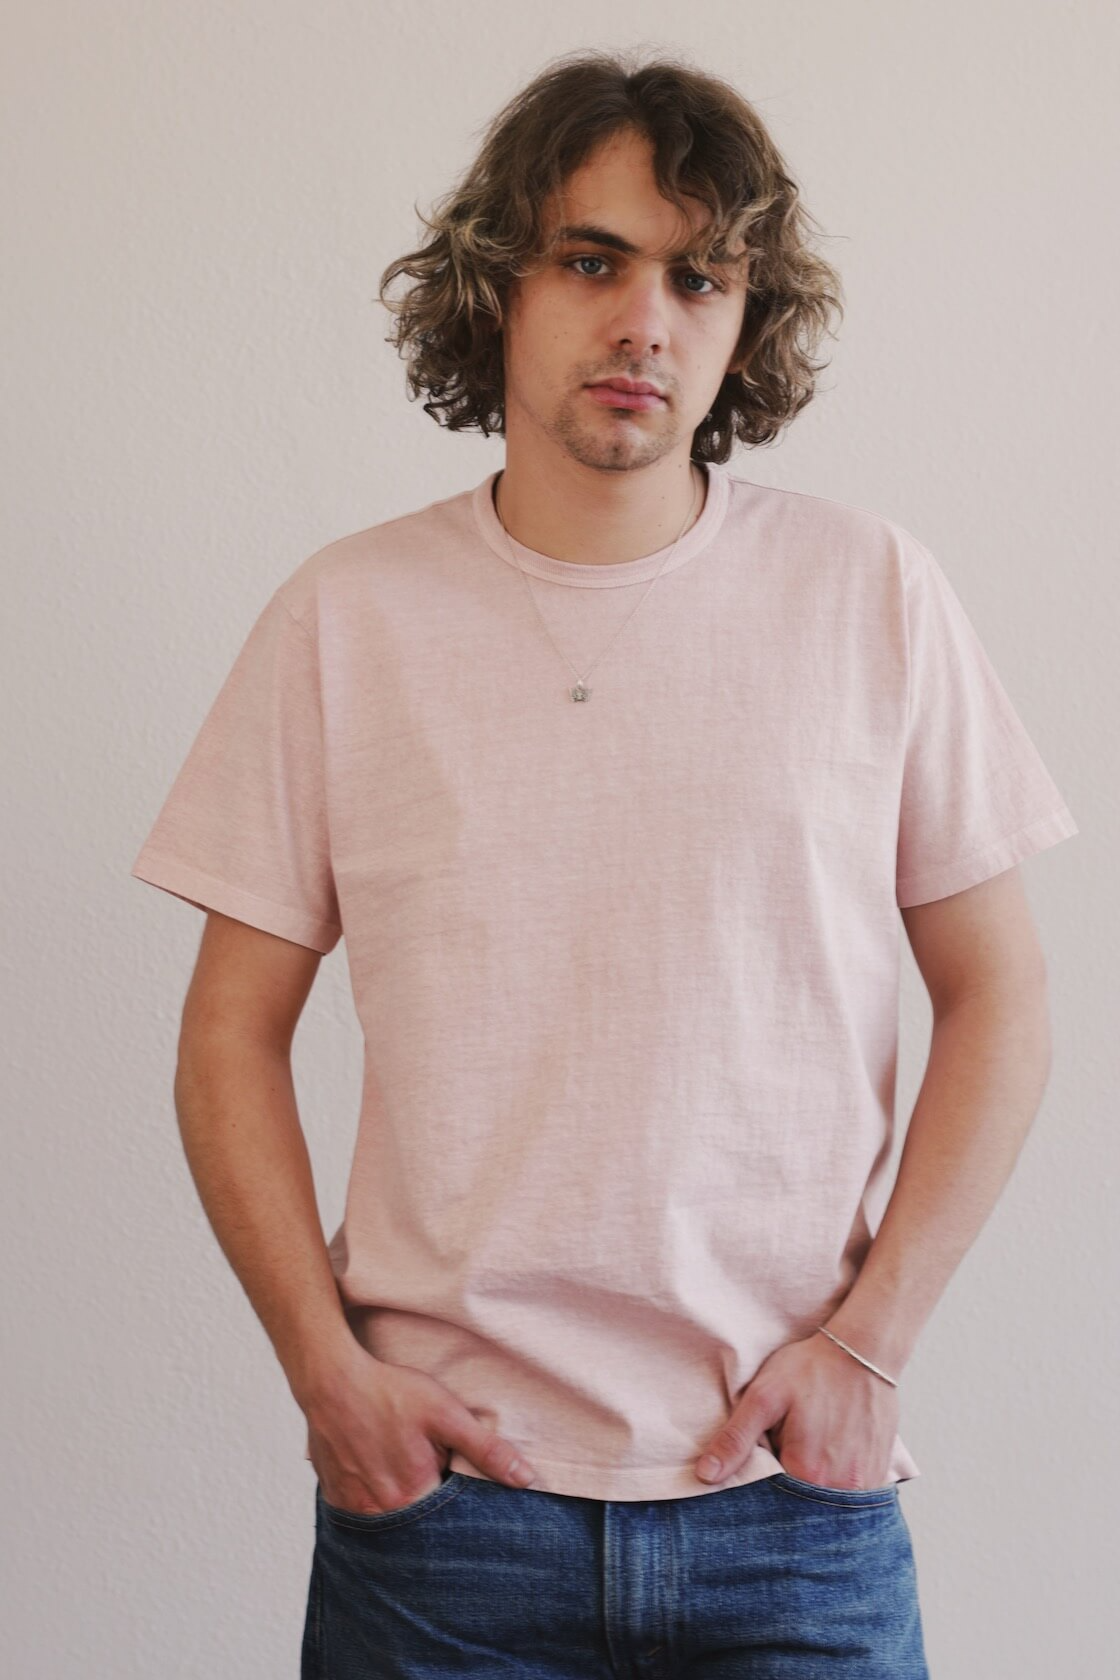 canoe club x lady white co. collaboration eraser pink t-shirt on body